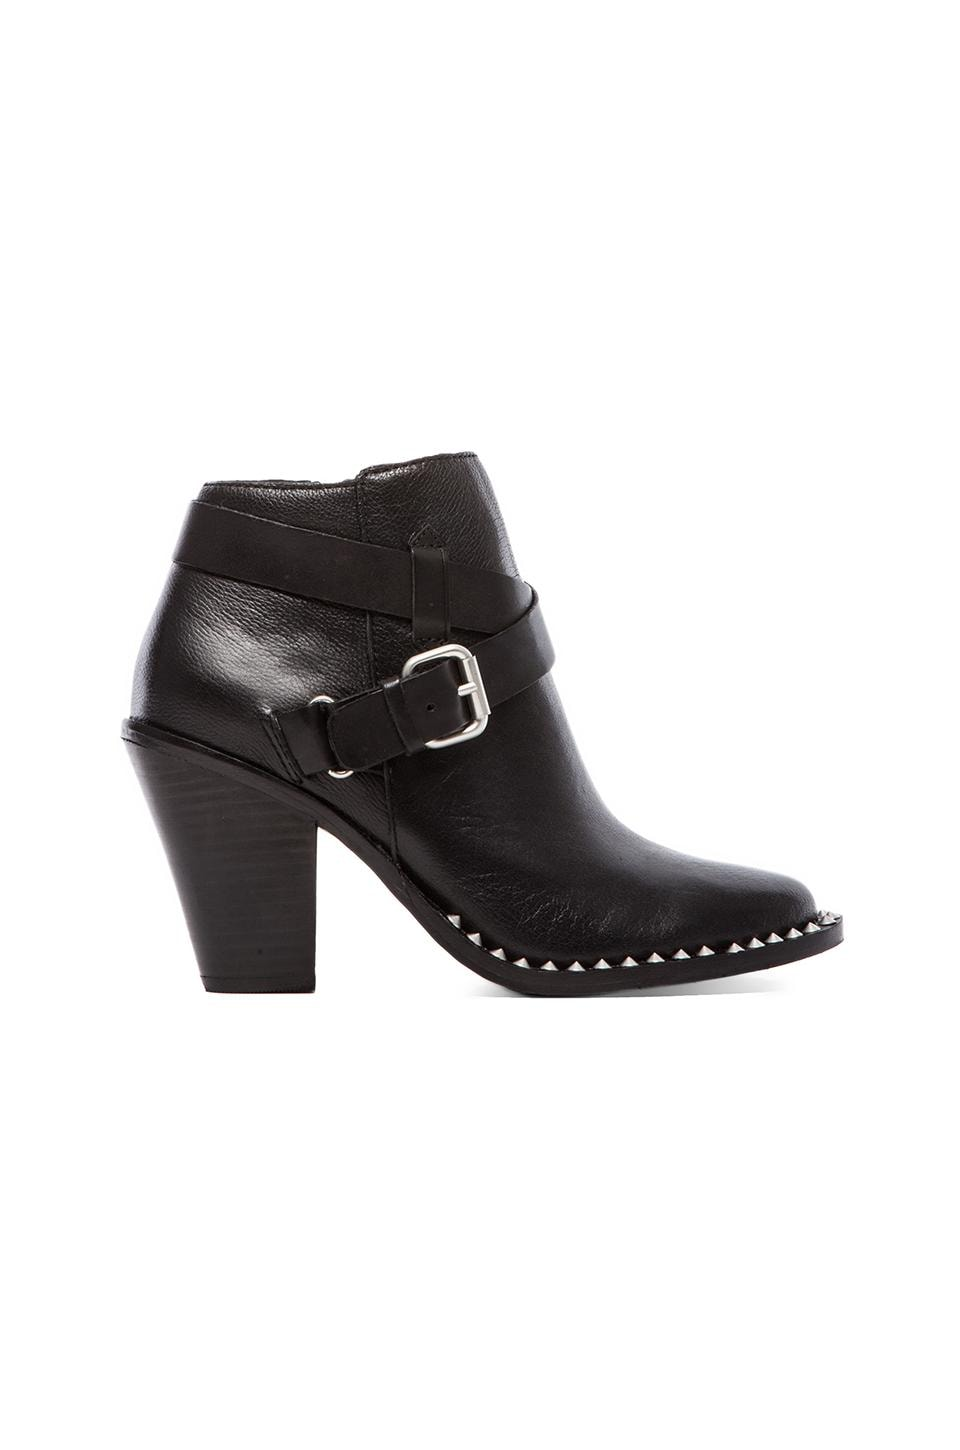 Dolce Vita Christie Bootie in Black